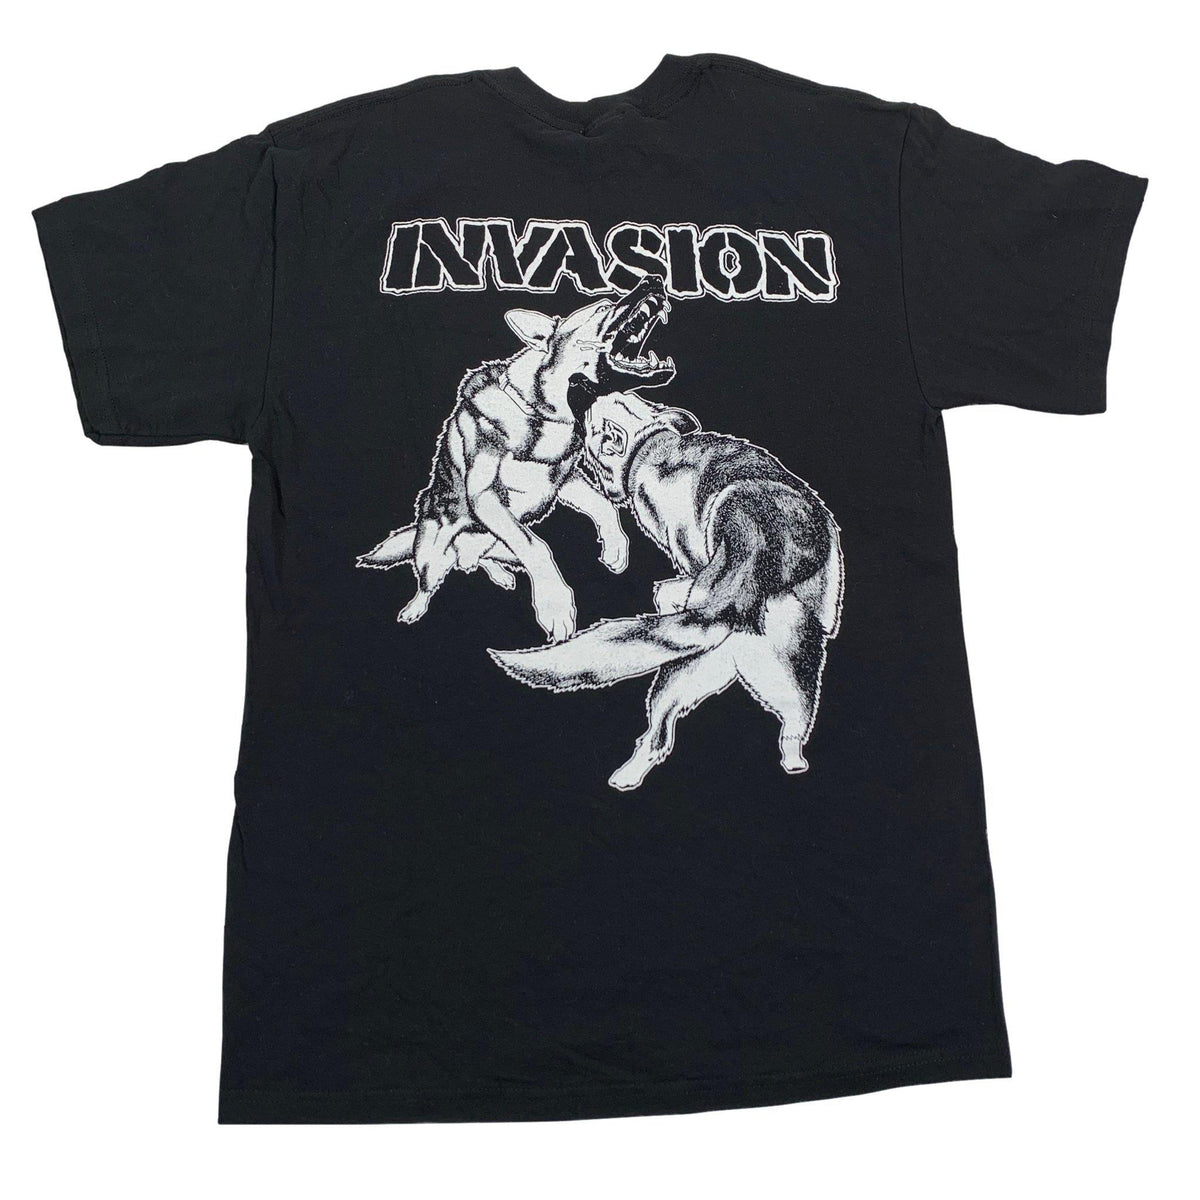 "Vintage Invasion ""Security"" T-Shirt - jointcustodydc"